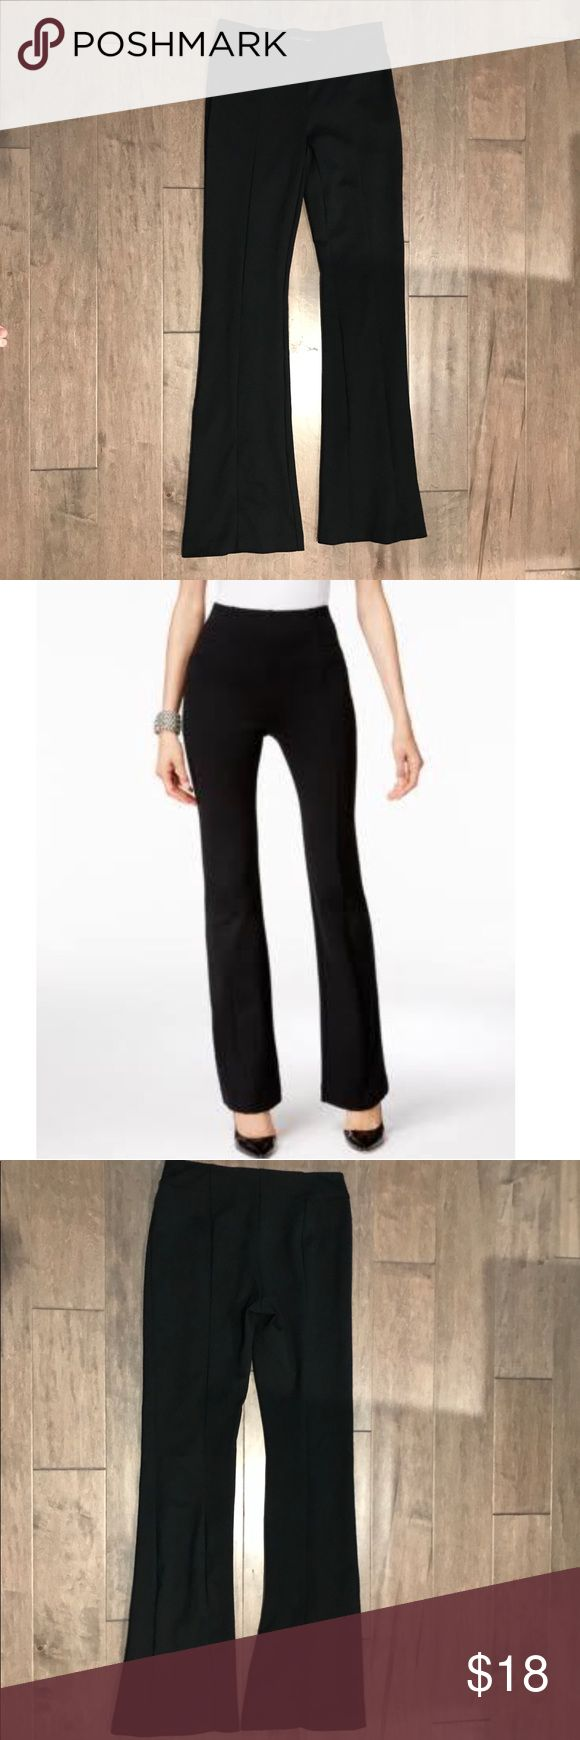 """INC Pull-on Bootcut Pants High rise: waistband sits at or above natural waist. Regular fit through hips and thighs. Bootcut leg. Pull-on styling. Approximate inseam: 33"""". Fabric Content: Rayon/nylon/spandex. Excellent like new condition. INC International Concepts Pants Boot Cut & Flare"""